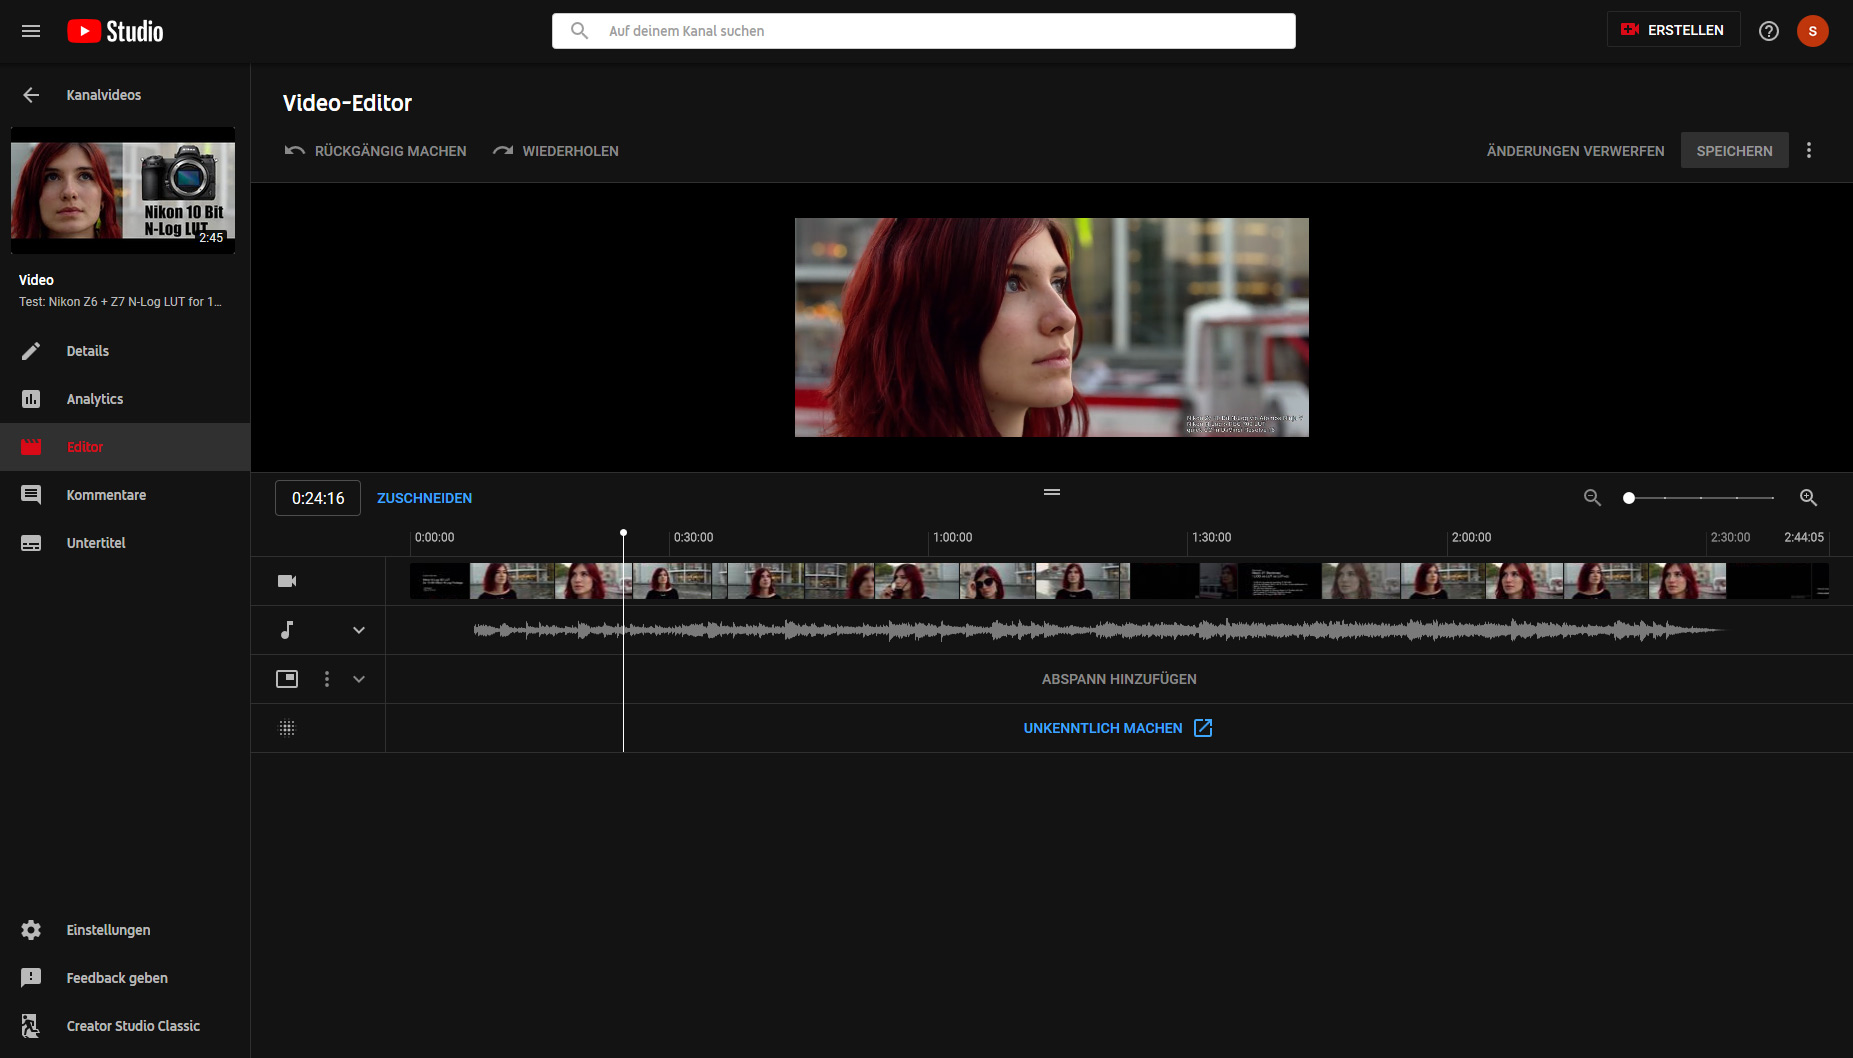 The YouTube video editor: a closer look